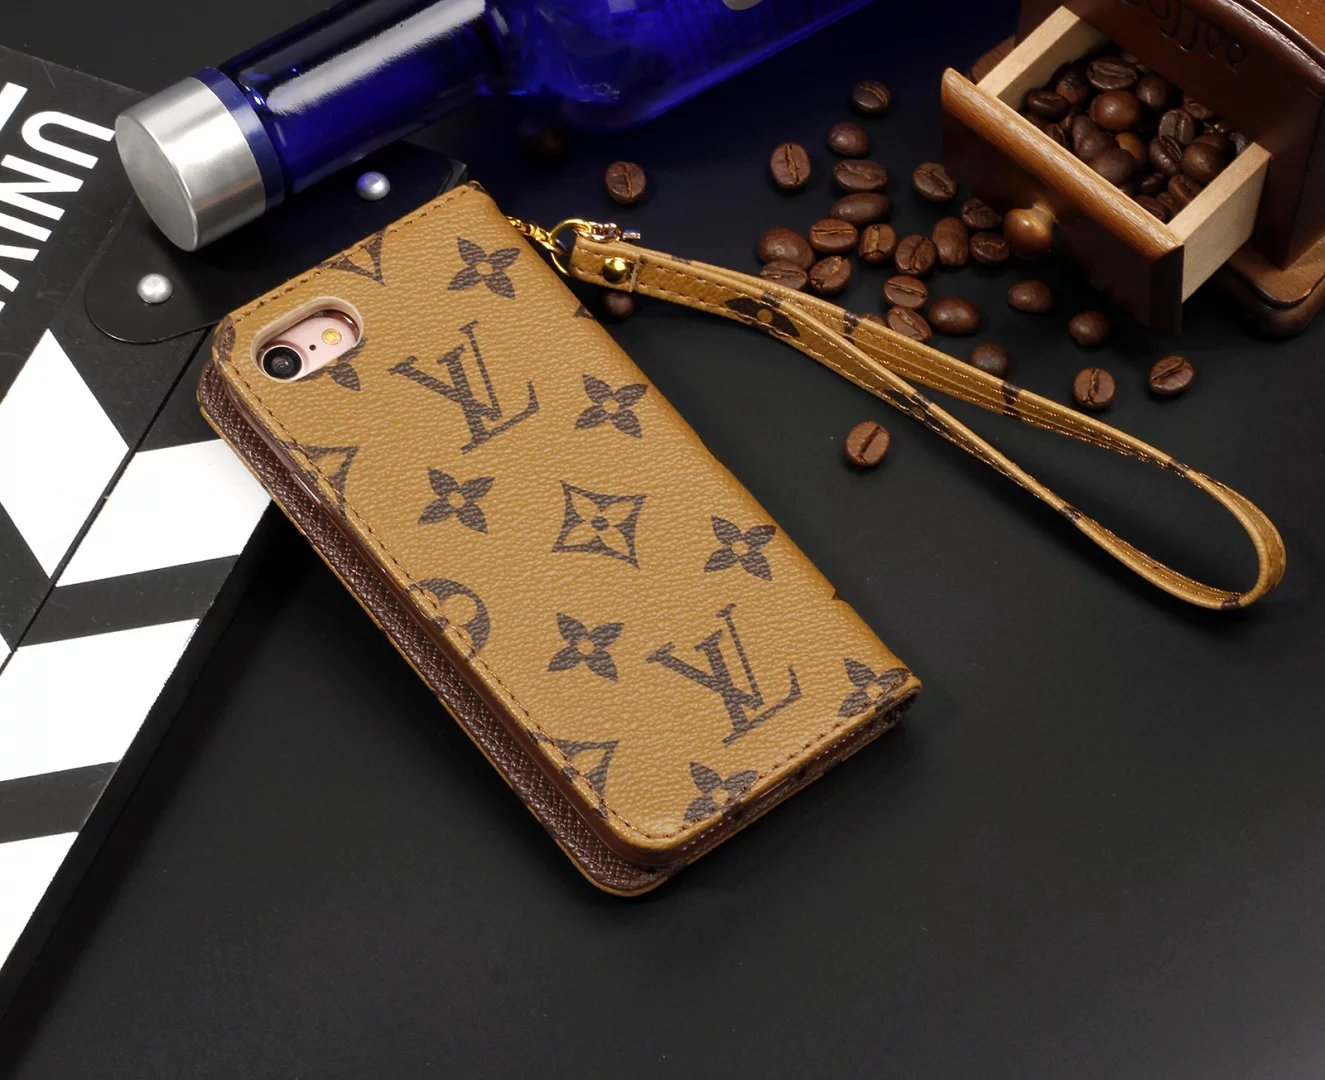 mini iphone hülle handyhülle iphone selbst gestalten Louis Vuitton iphone6s hülle handy flip ca6s iphone 6s silikonhülle handy iphone 6s hülle von apple handyhülle beschriften iphone 6 großes display i iphone 6s